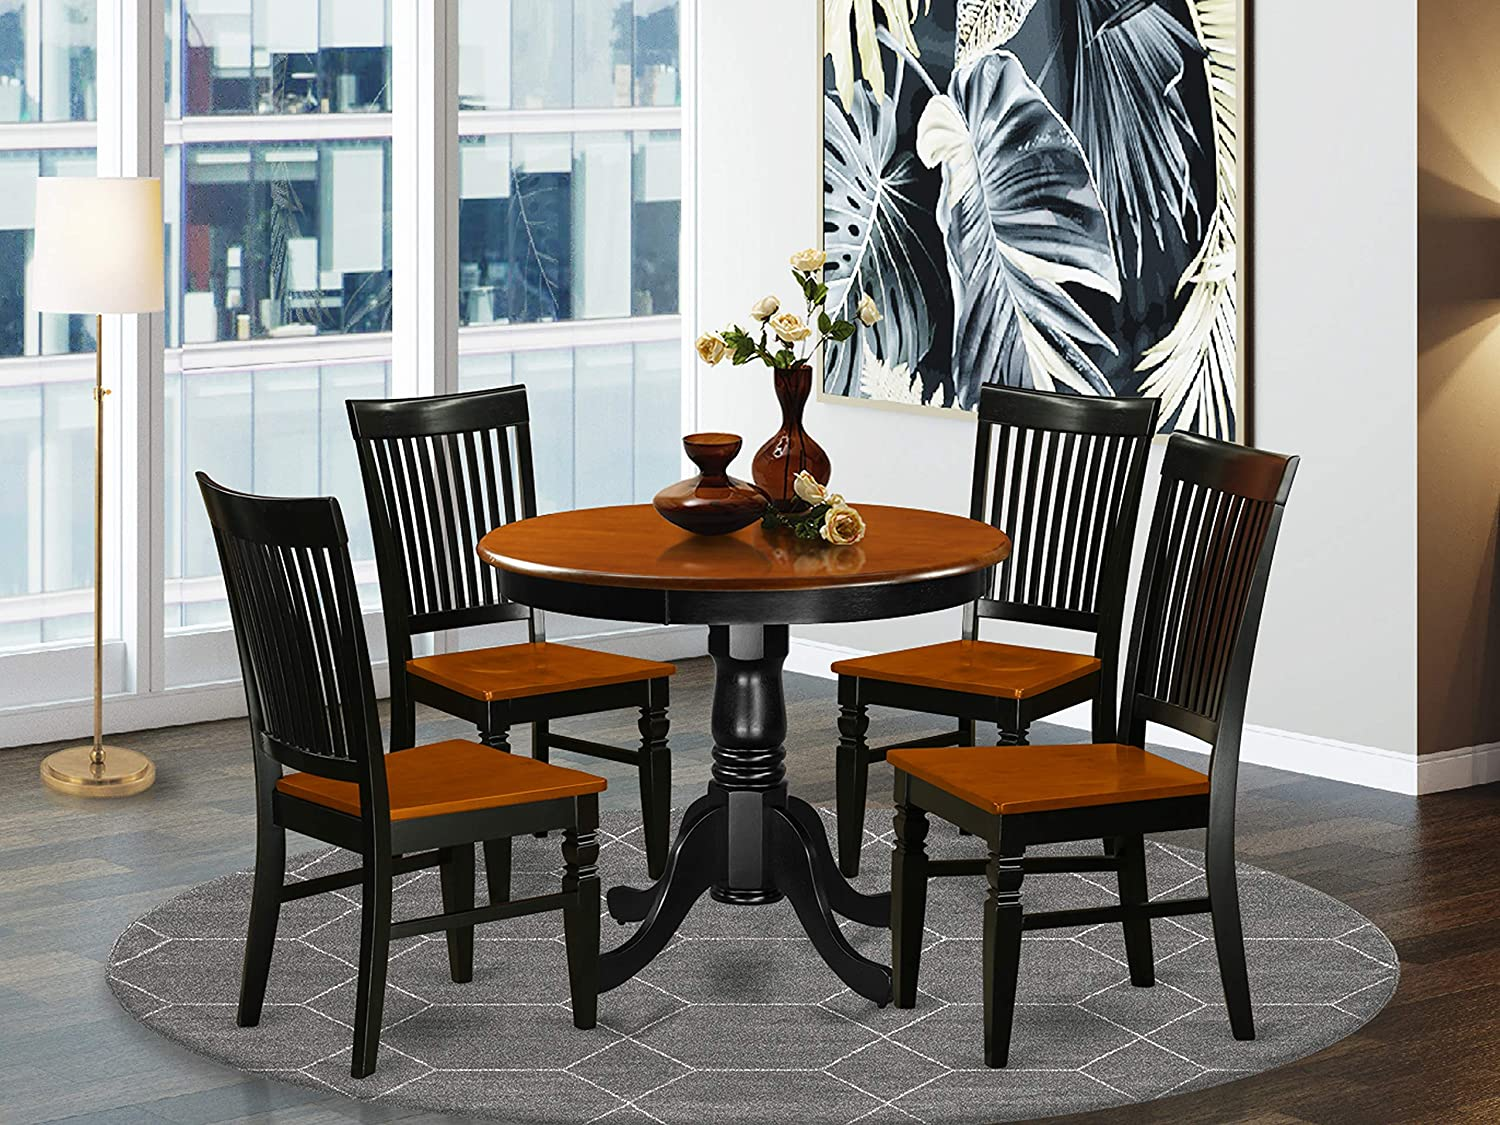 East West Furniture Kitchen dining table set 4 Wonderful kitchen chairs - A Attractive dinner table- cherry Color Wooden Seat cherry and black dining room table